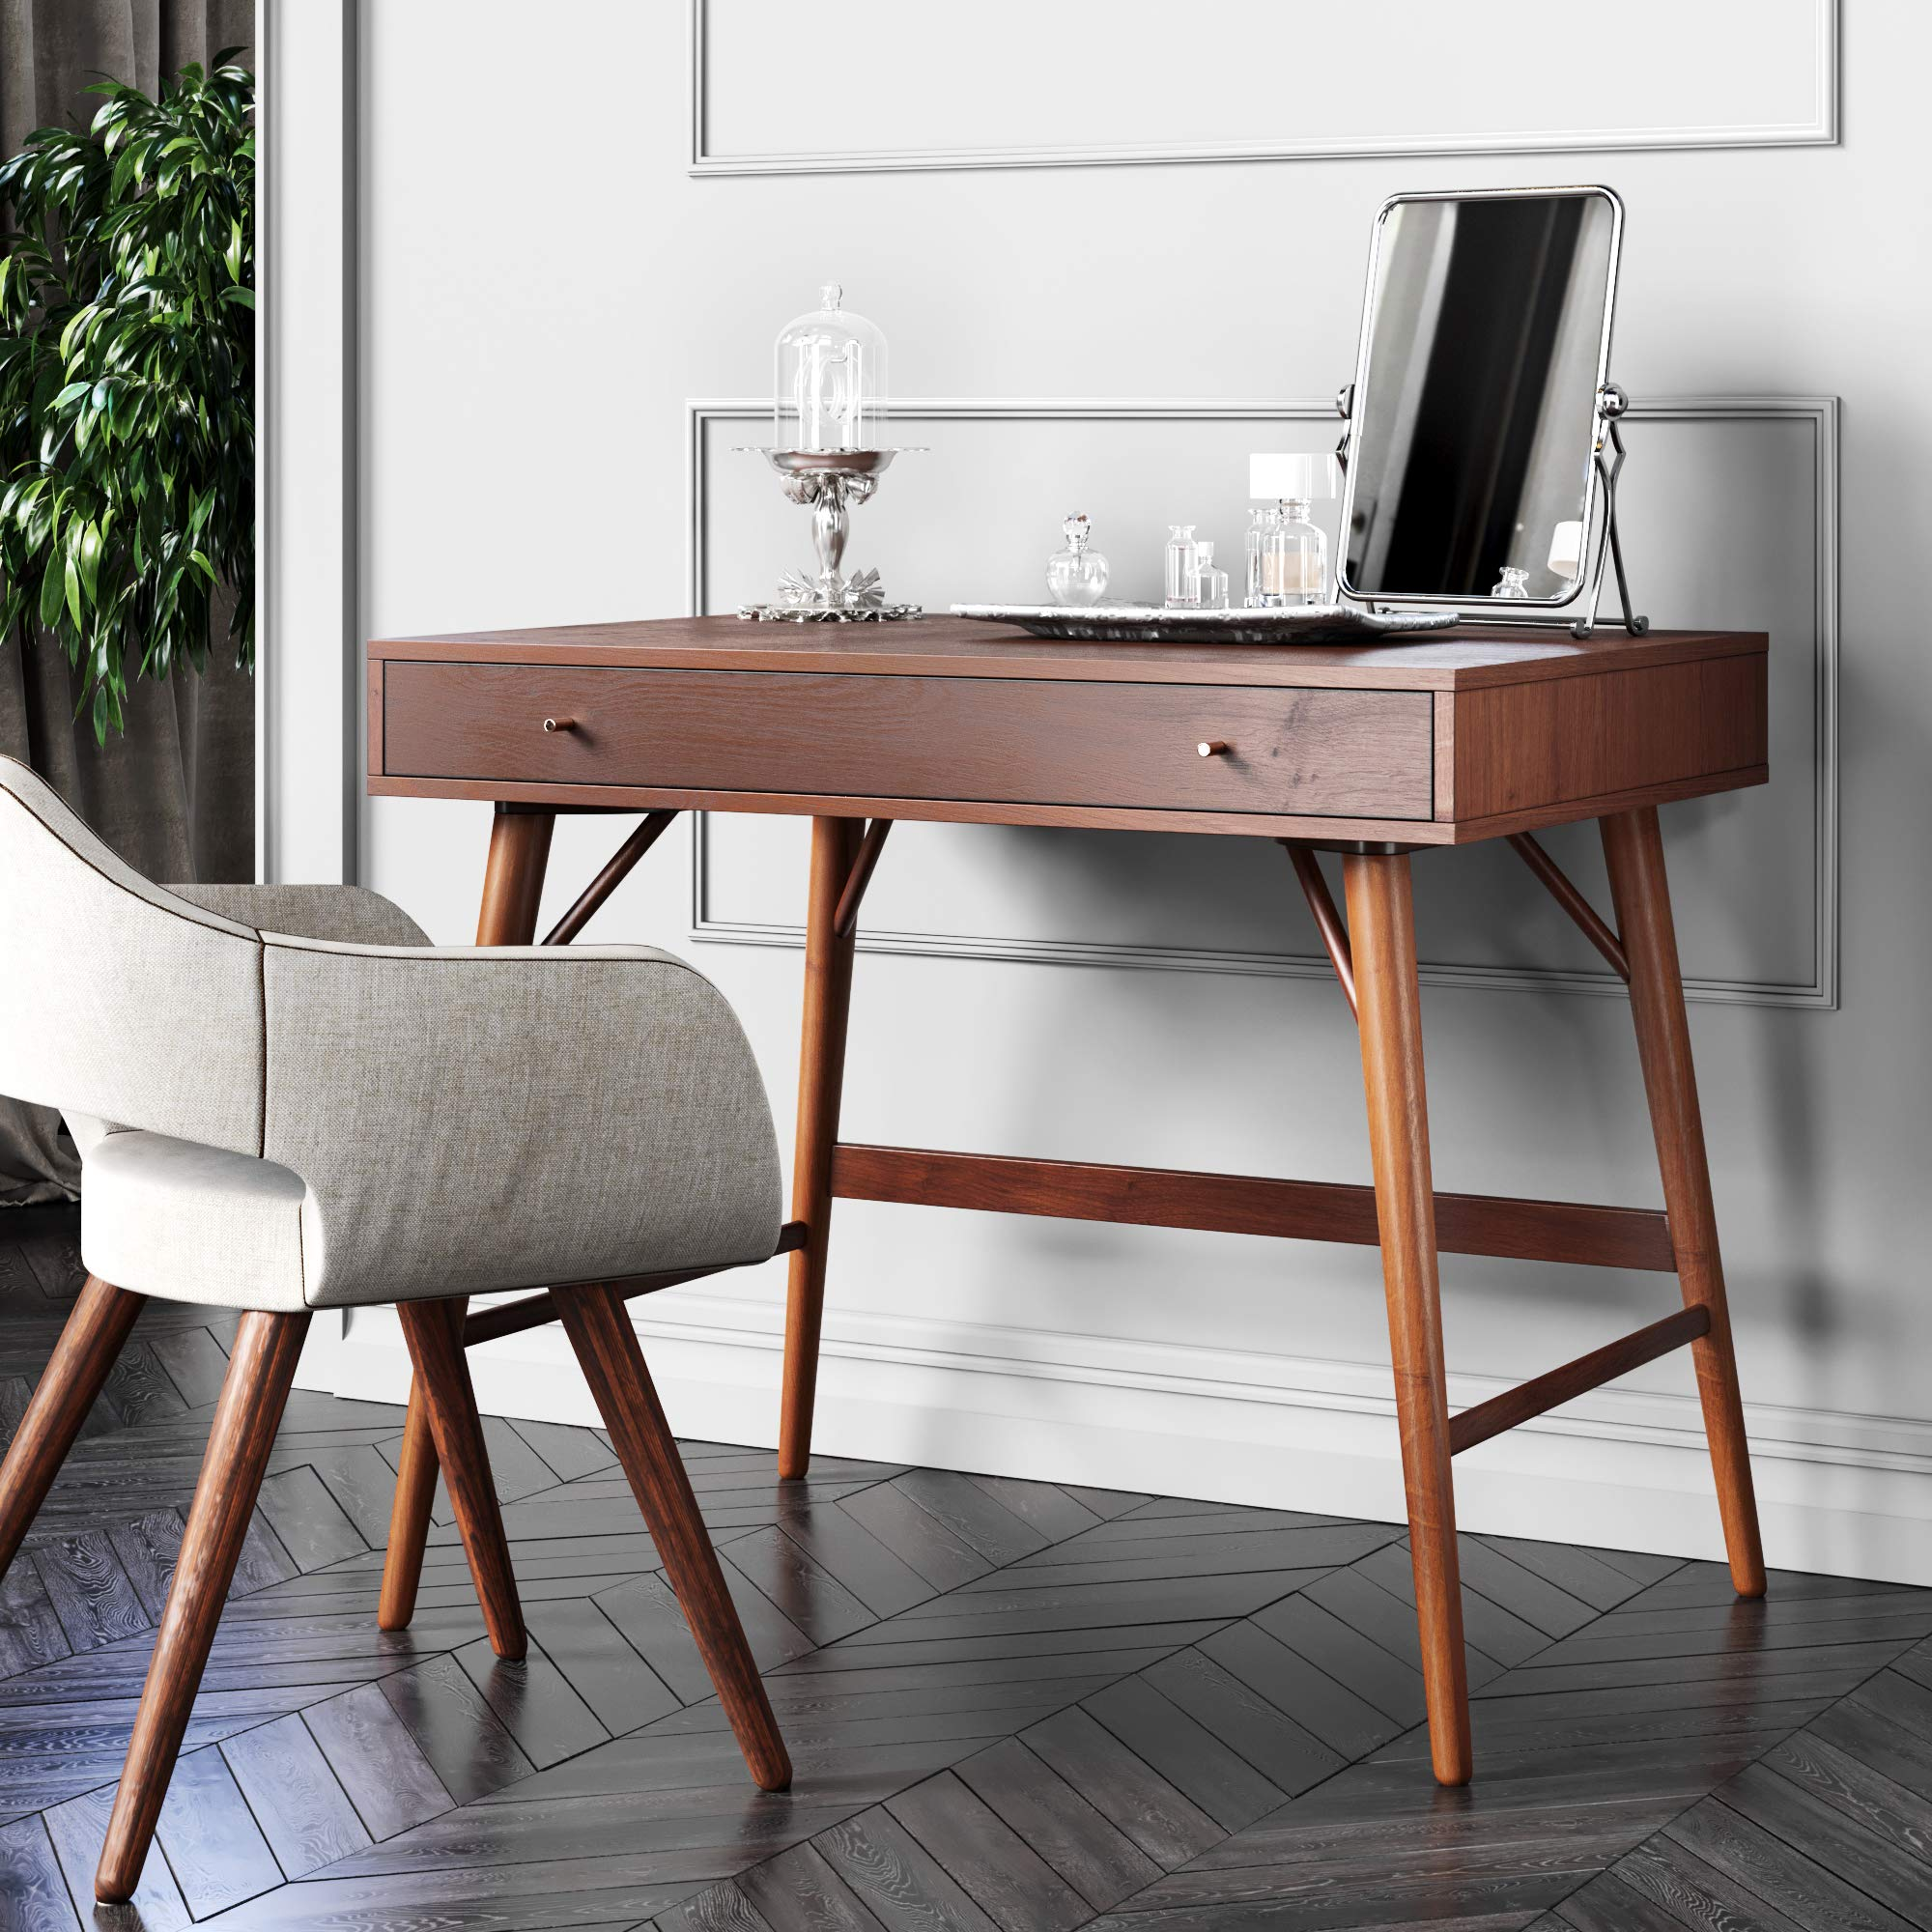 Bonny Wood Desk | Mid-Century, Modern for Home Office, Small Writing Station by The Vine Square